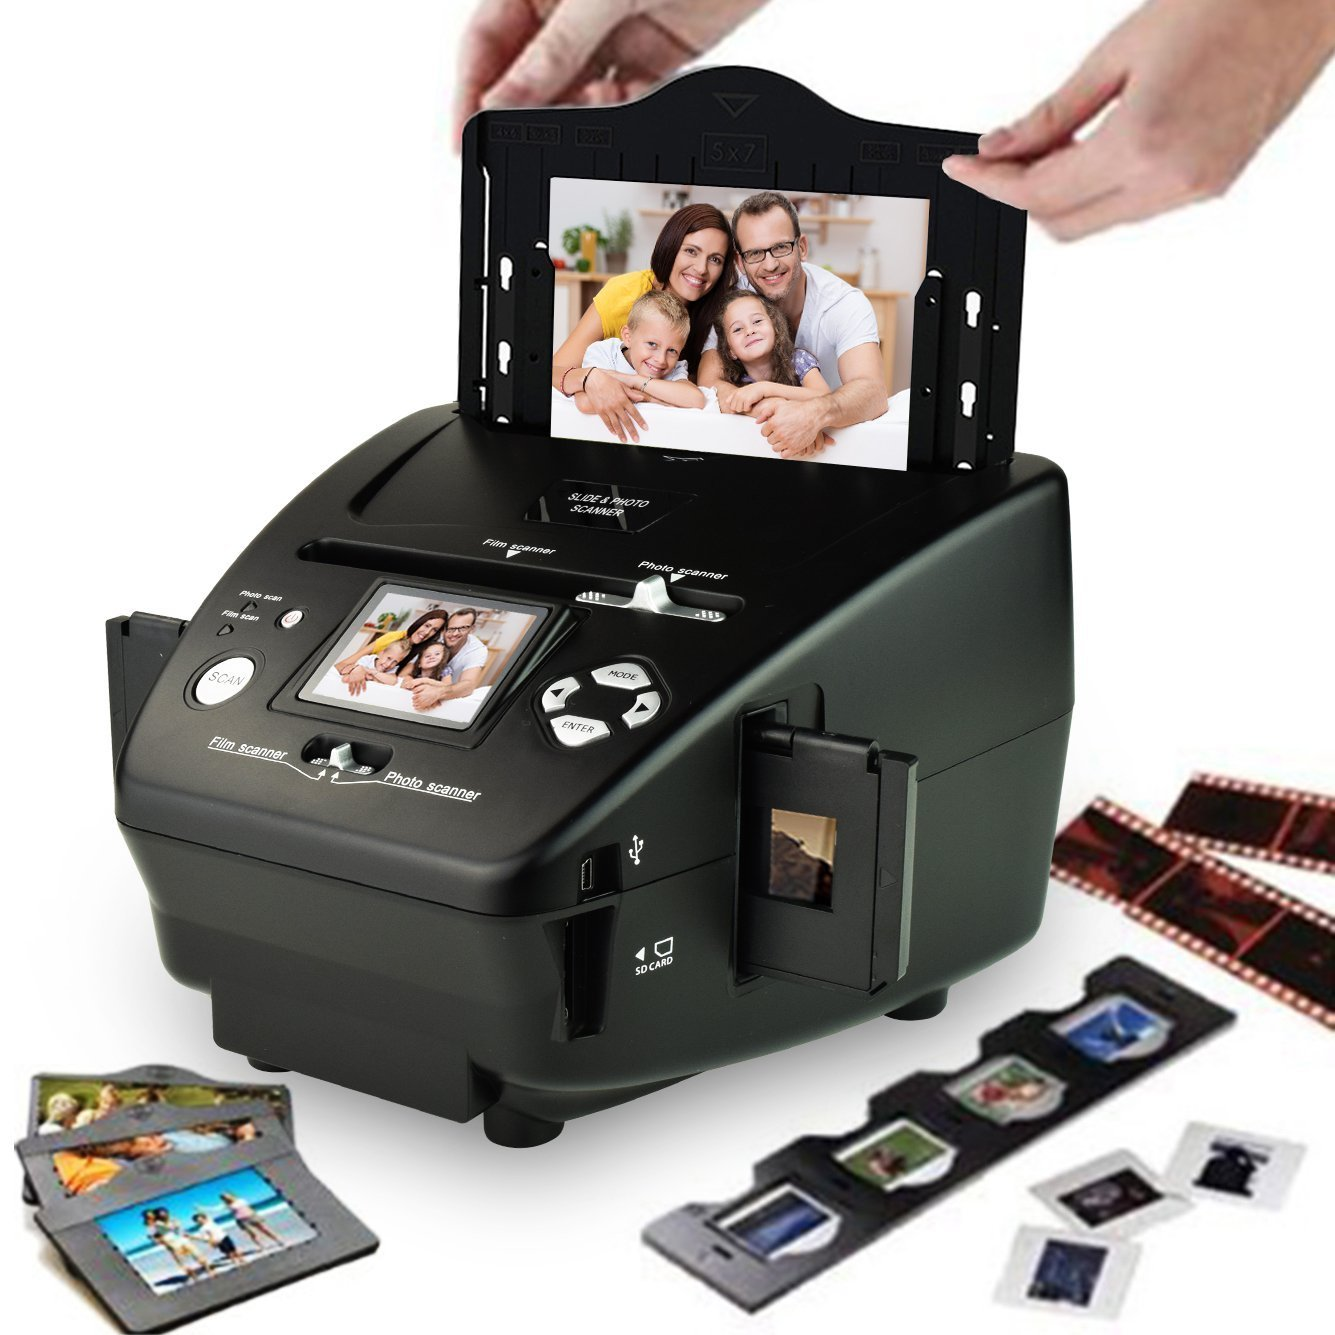 DIGITNOW 35mm /135slides&Negatives Film Scanner Photo, Name Card, Slides and Negatives to Digital Converter for Saving Films to Digital Files in 4GB SD card(Included) with Photo Editing Software by DigitNow! (Image #2)